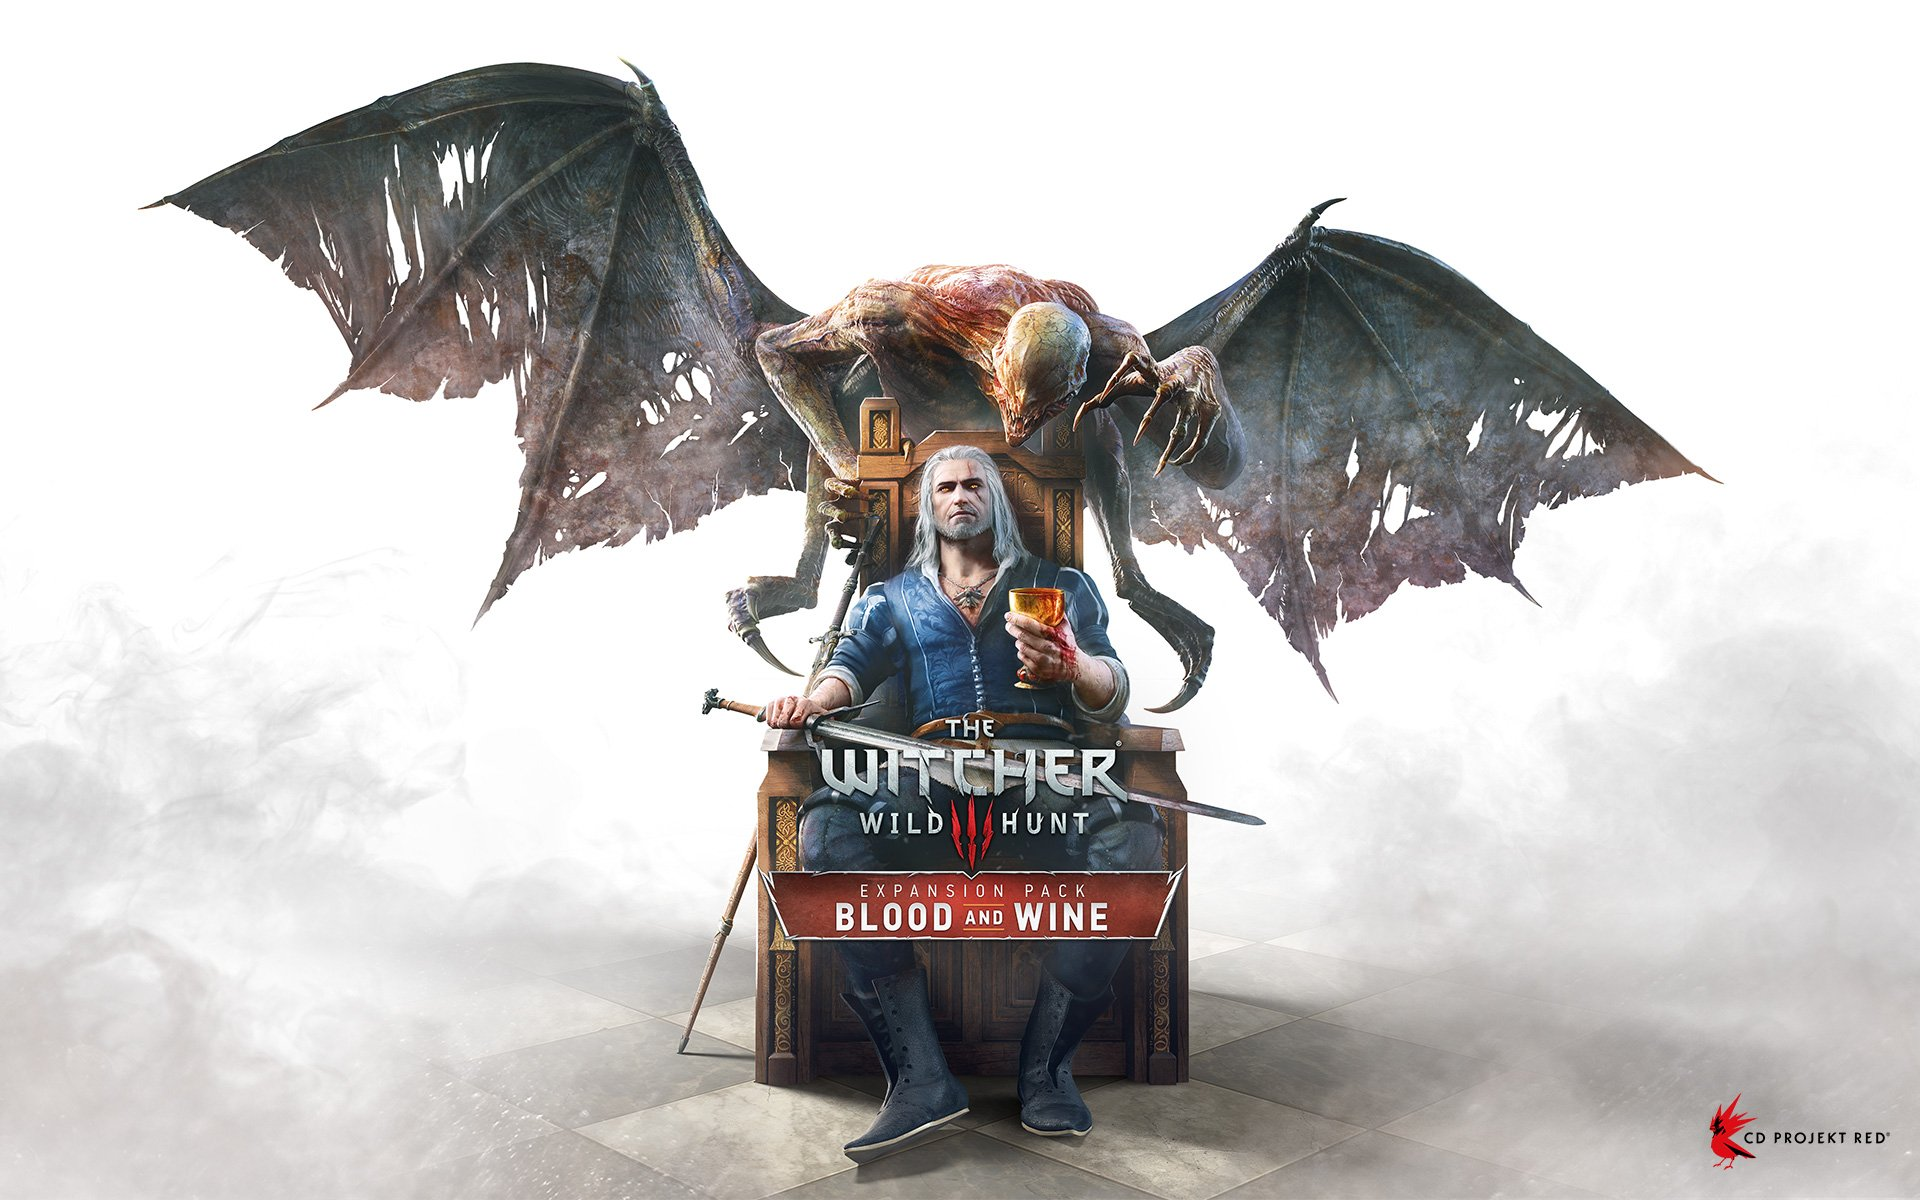 The-Witcher-3-Blo2od-and-Wine-cover-art